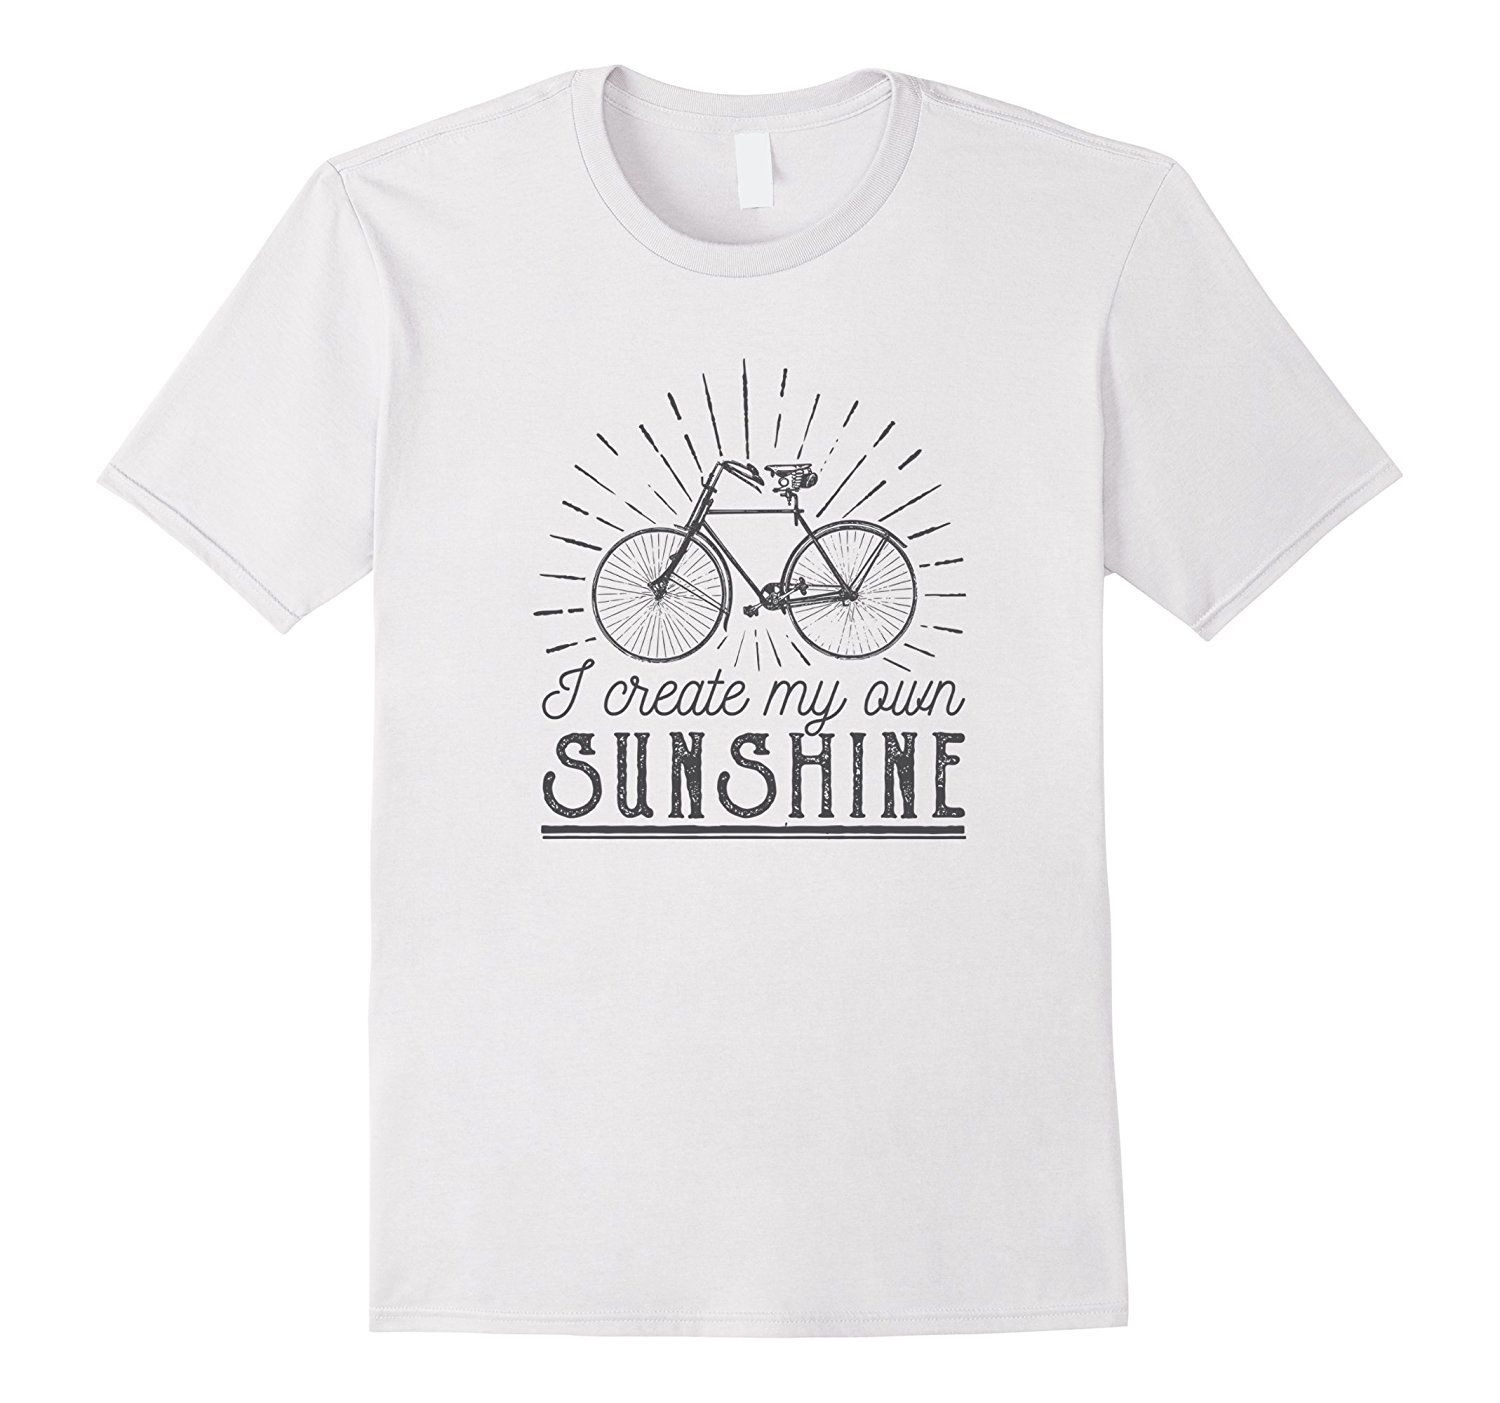 07d199c9 I Create My Own Sunshine Cycling Quotes T-Shirt only $19.99 ...